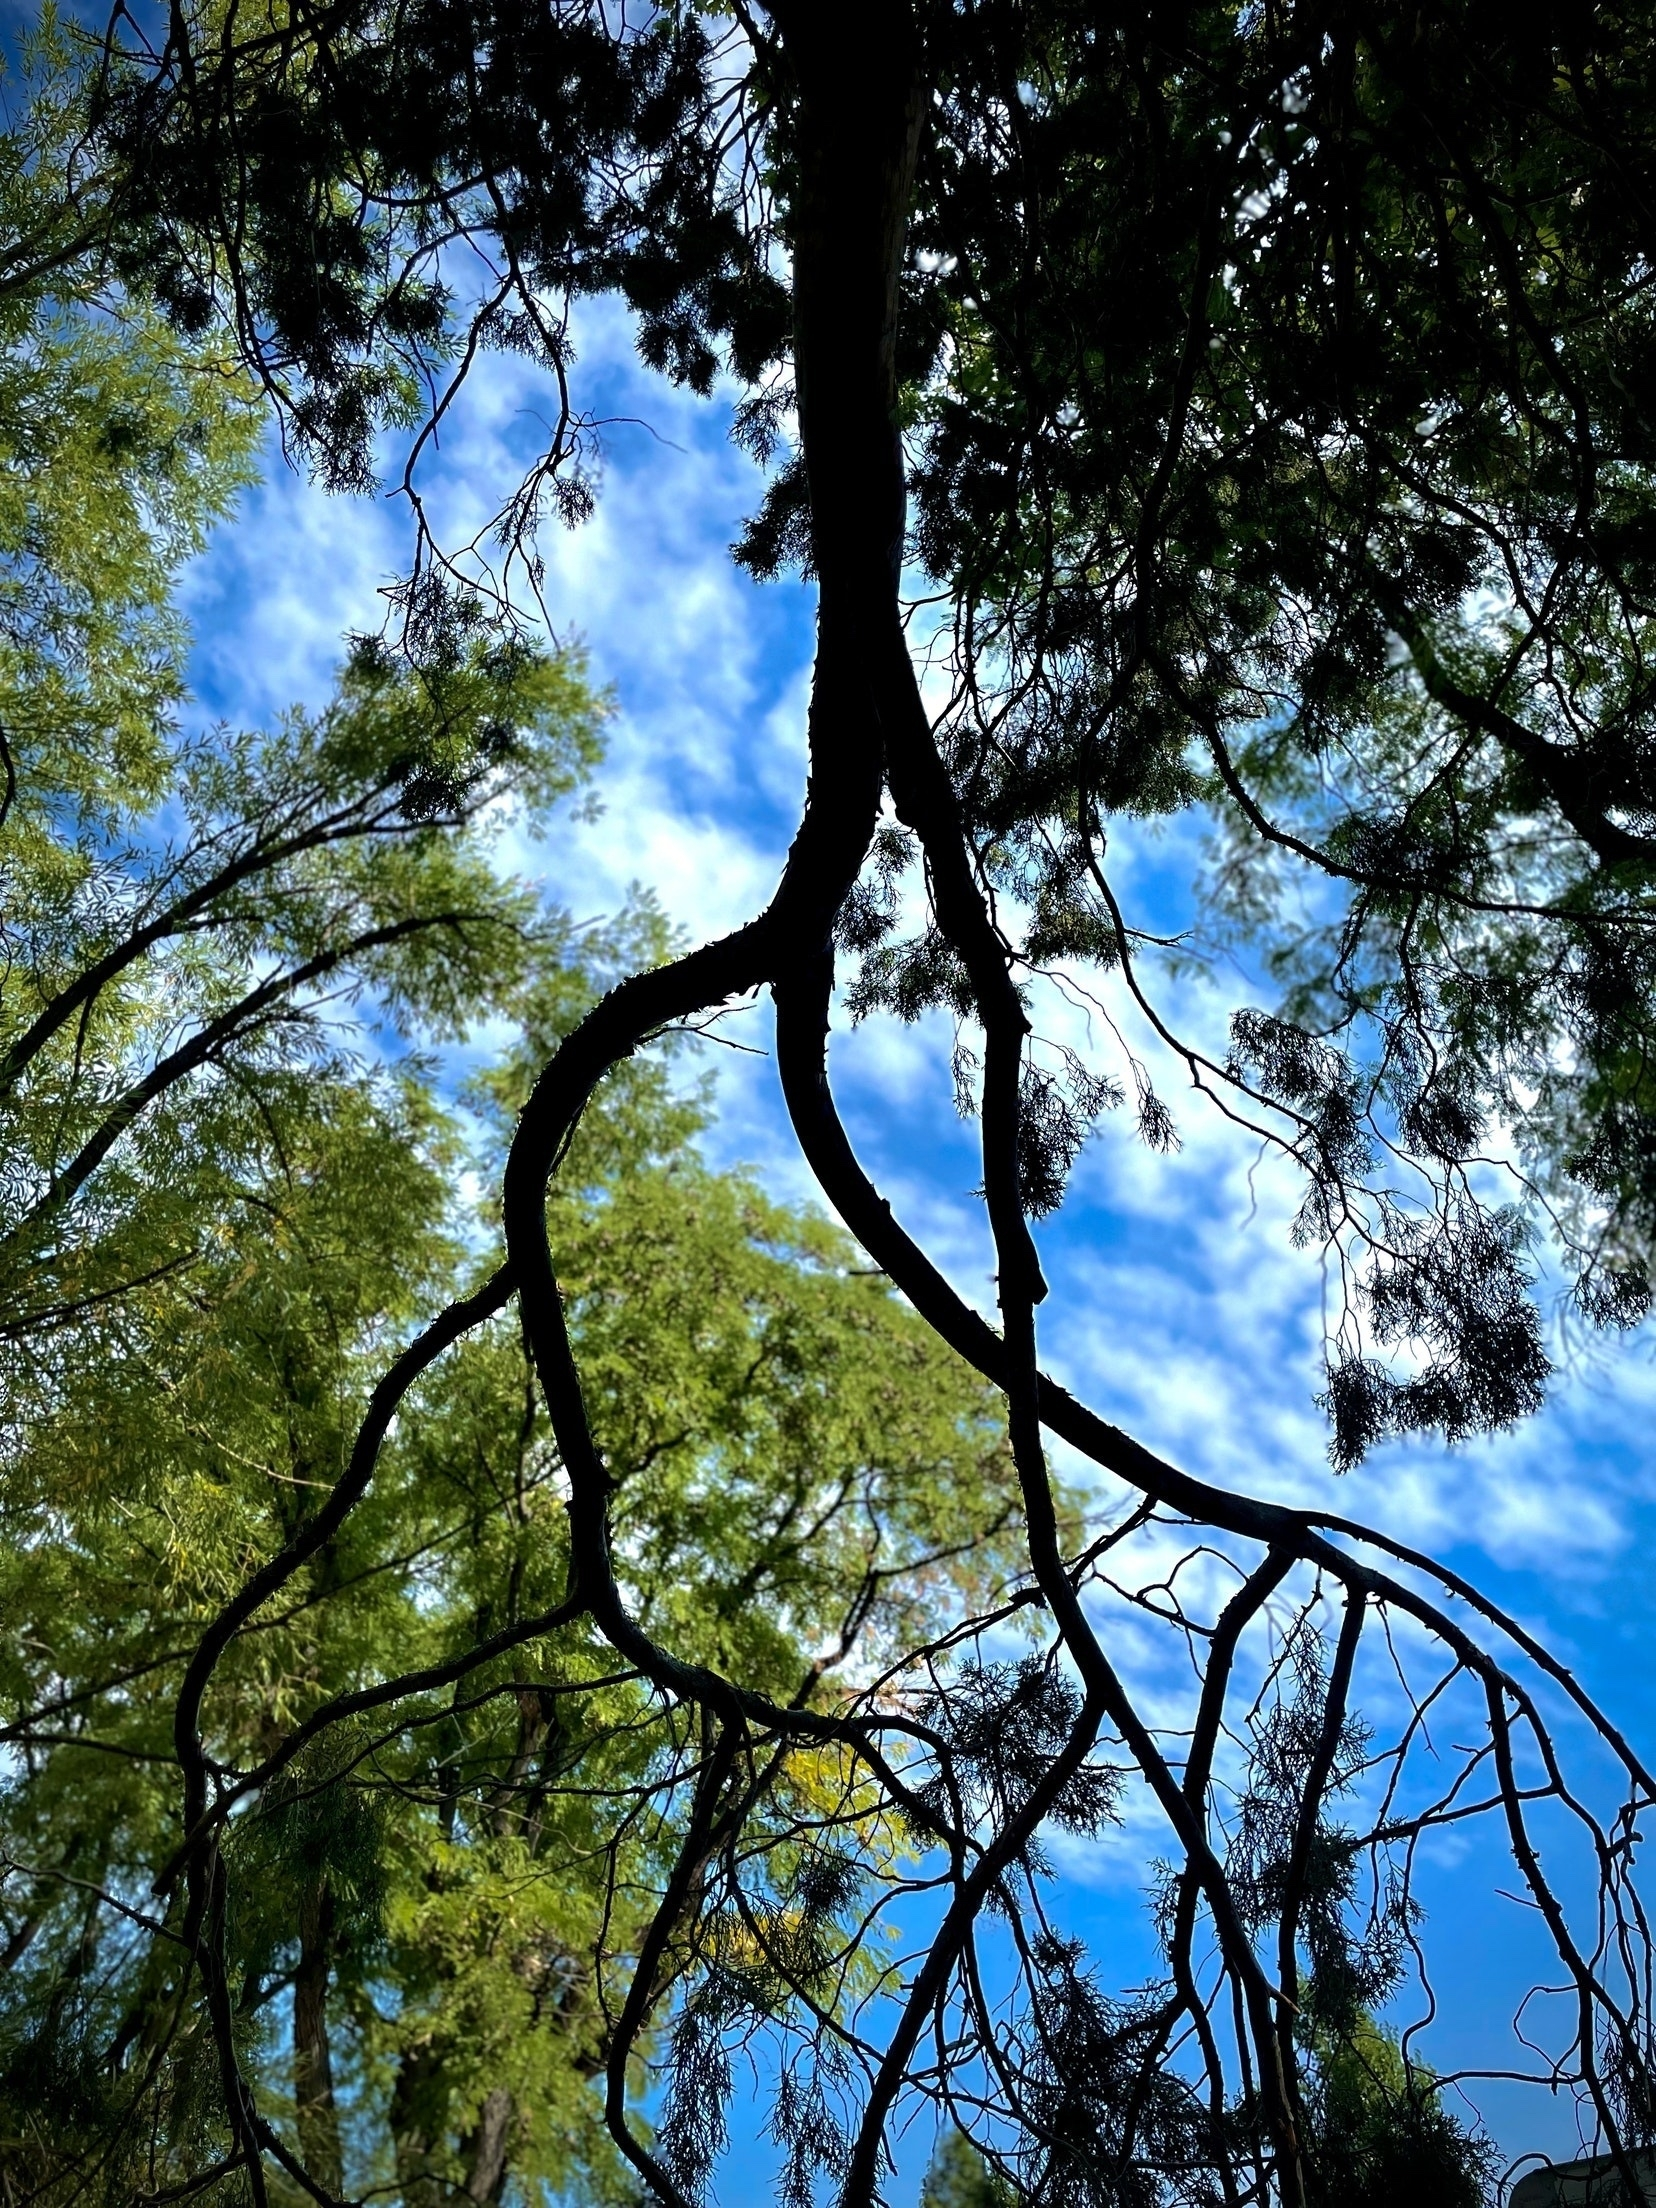 Looking up through a tree to a blue sky.